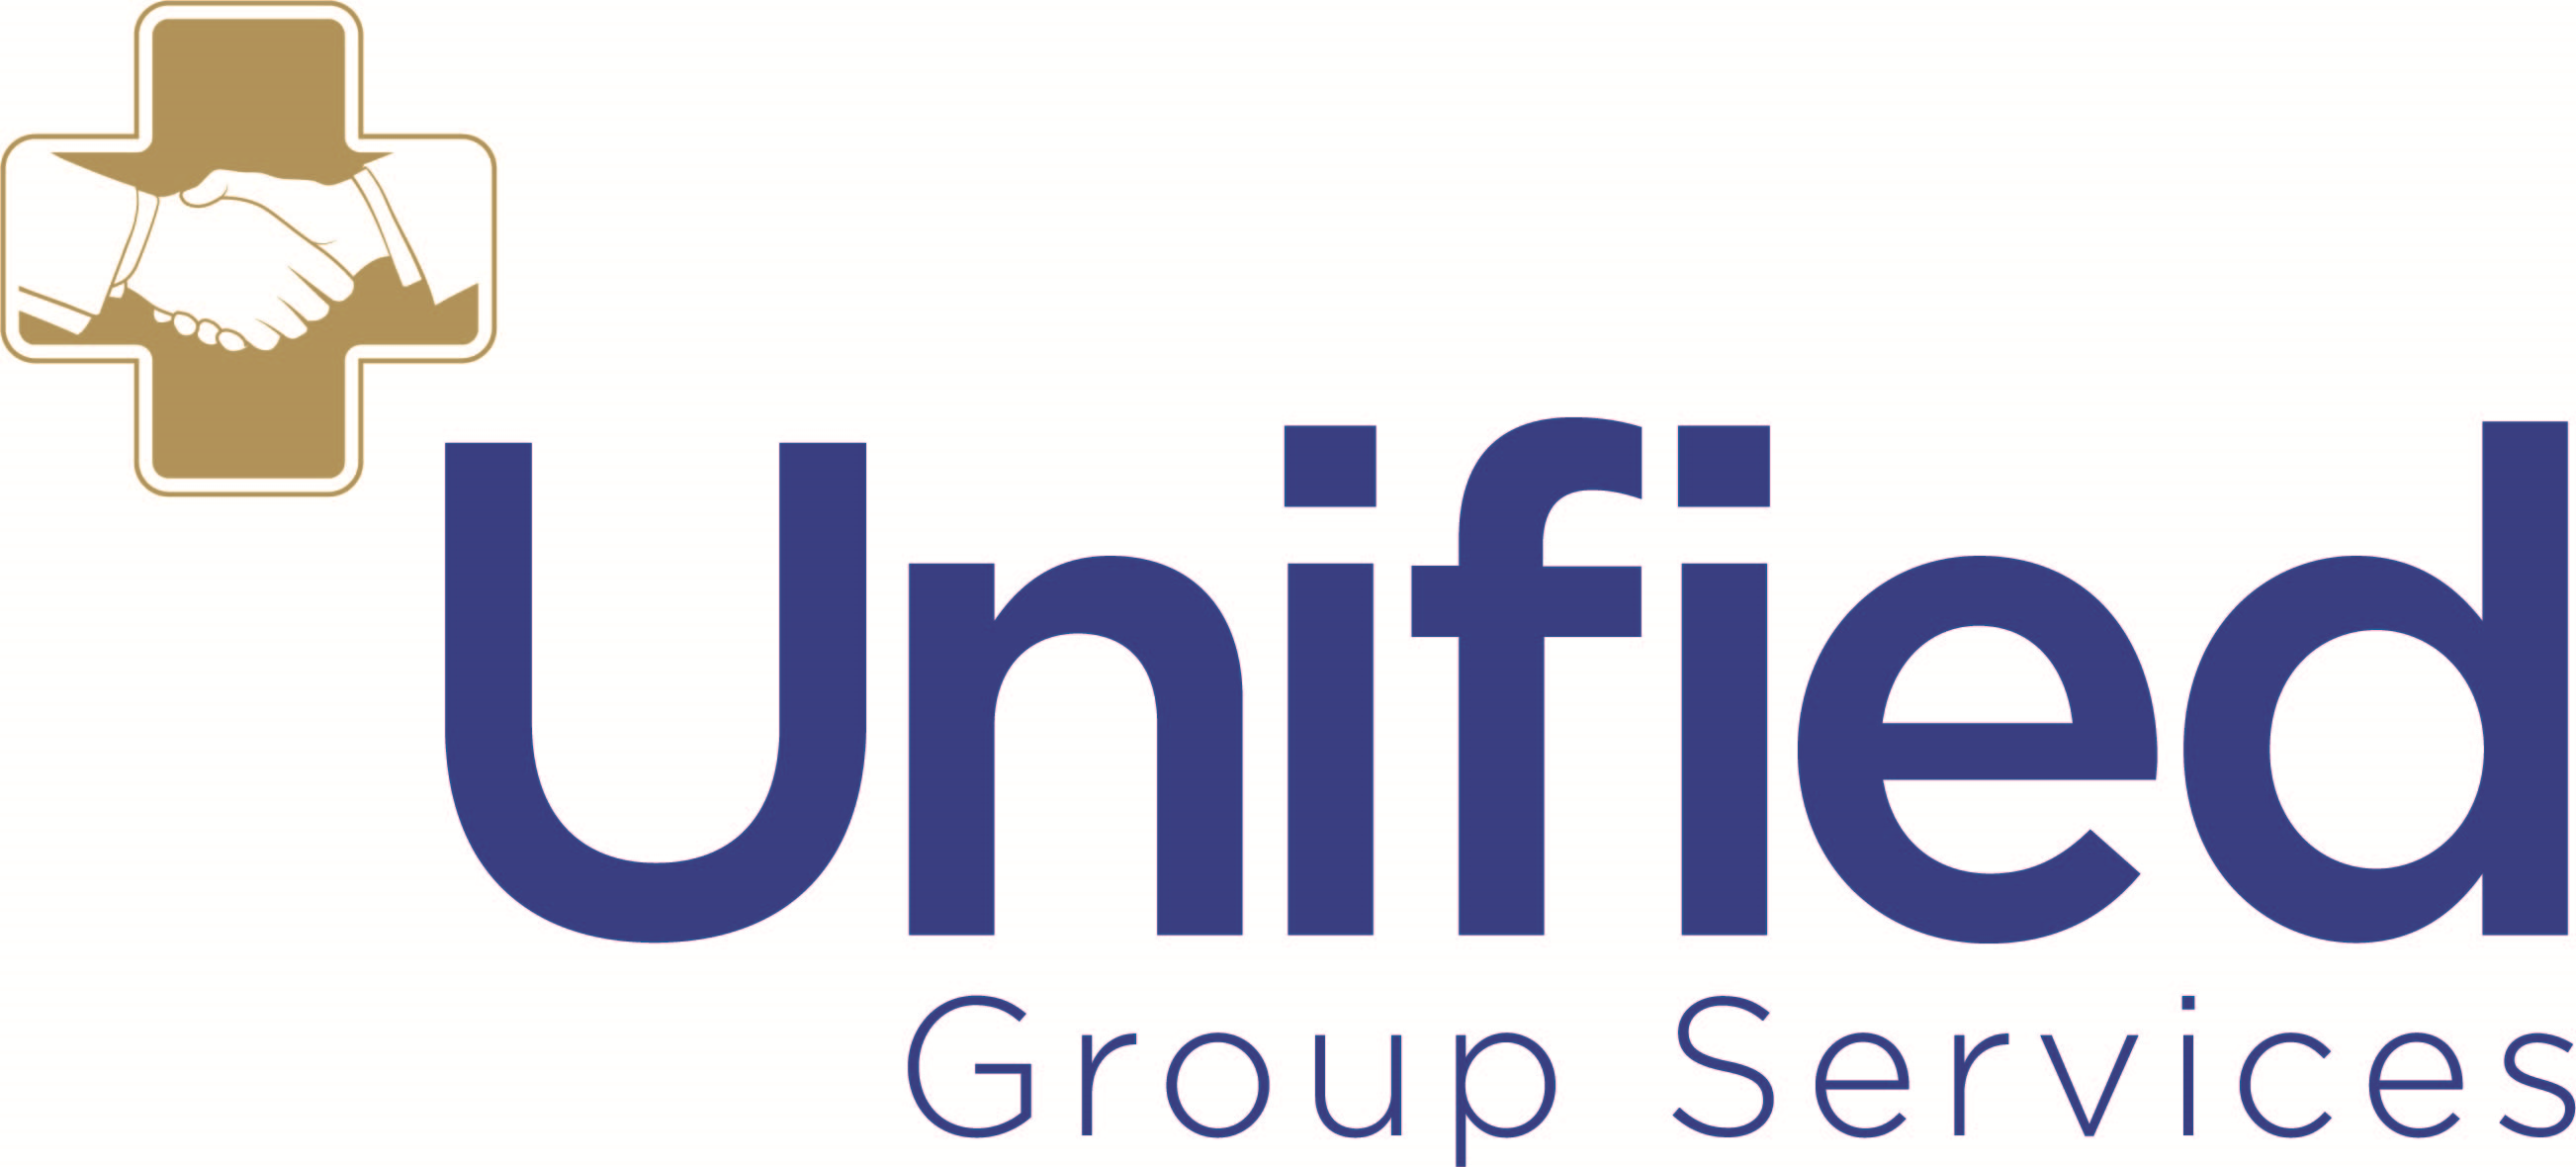 Unified Group Services, Inc Company Logo